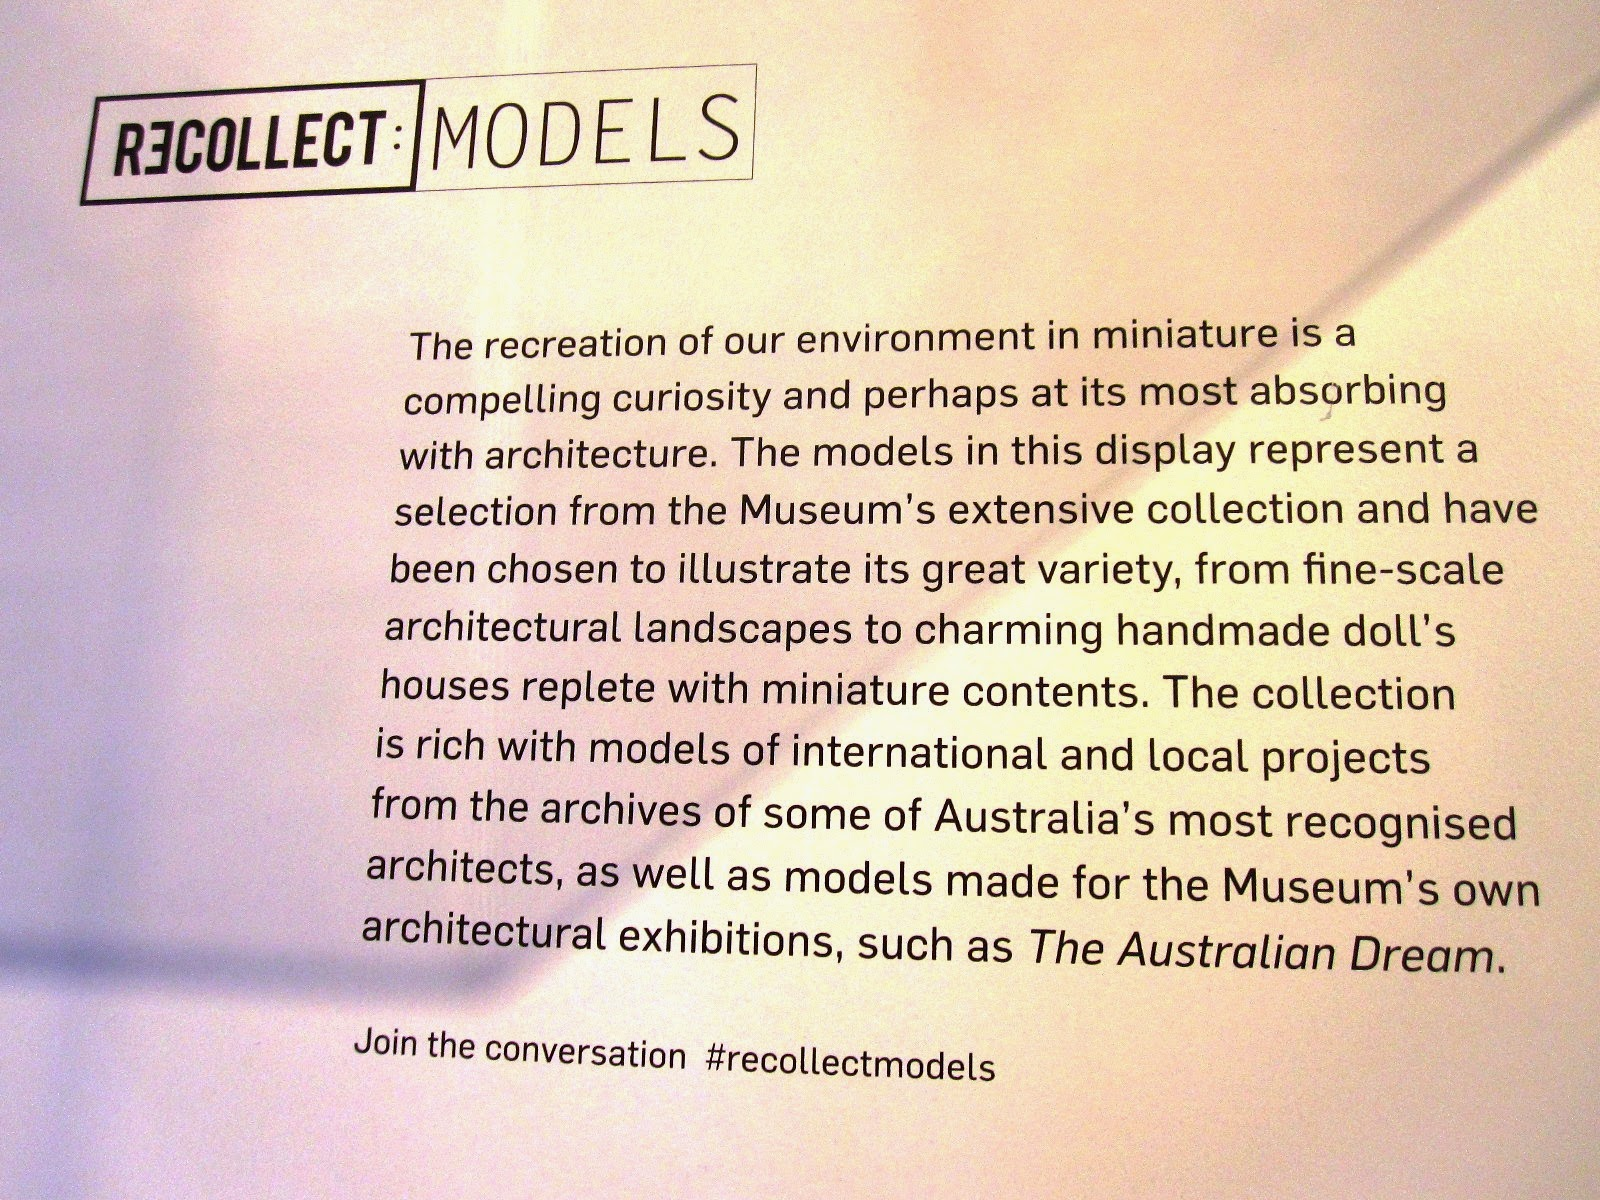 Exhibition sign for the exhibition Recollect 2: Models at the Powerhouse Museum.